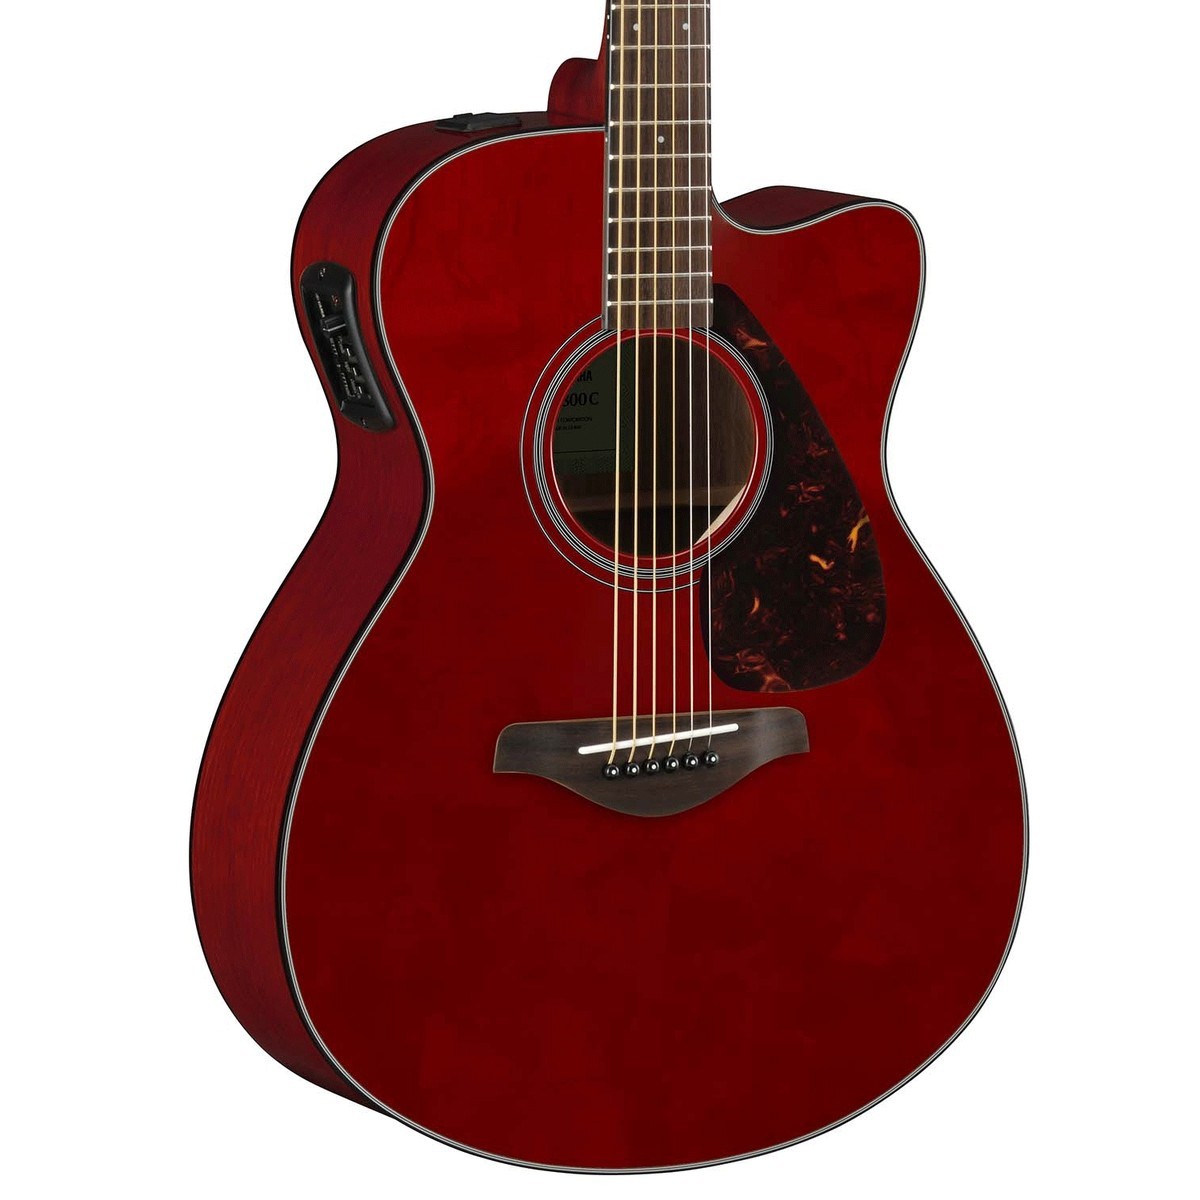 yamaha fsx800c electro acoustique guitare rouge rubis. Black Bedroom Furniture Sets. Home Design Ideas